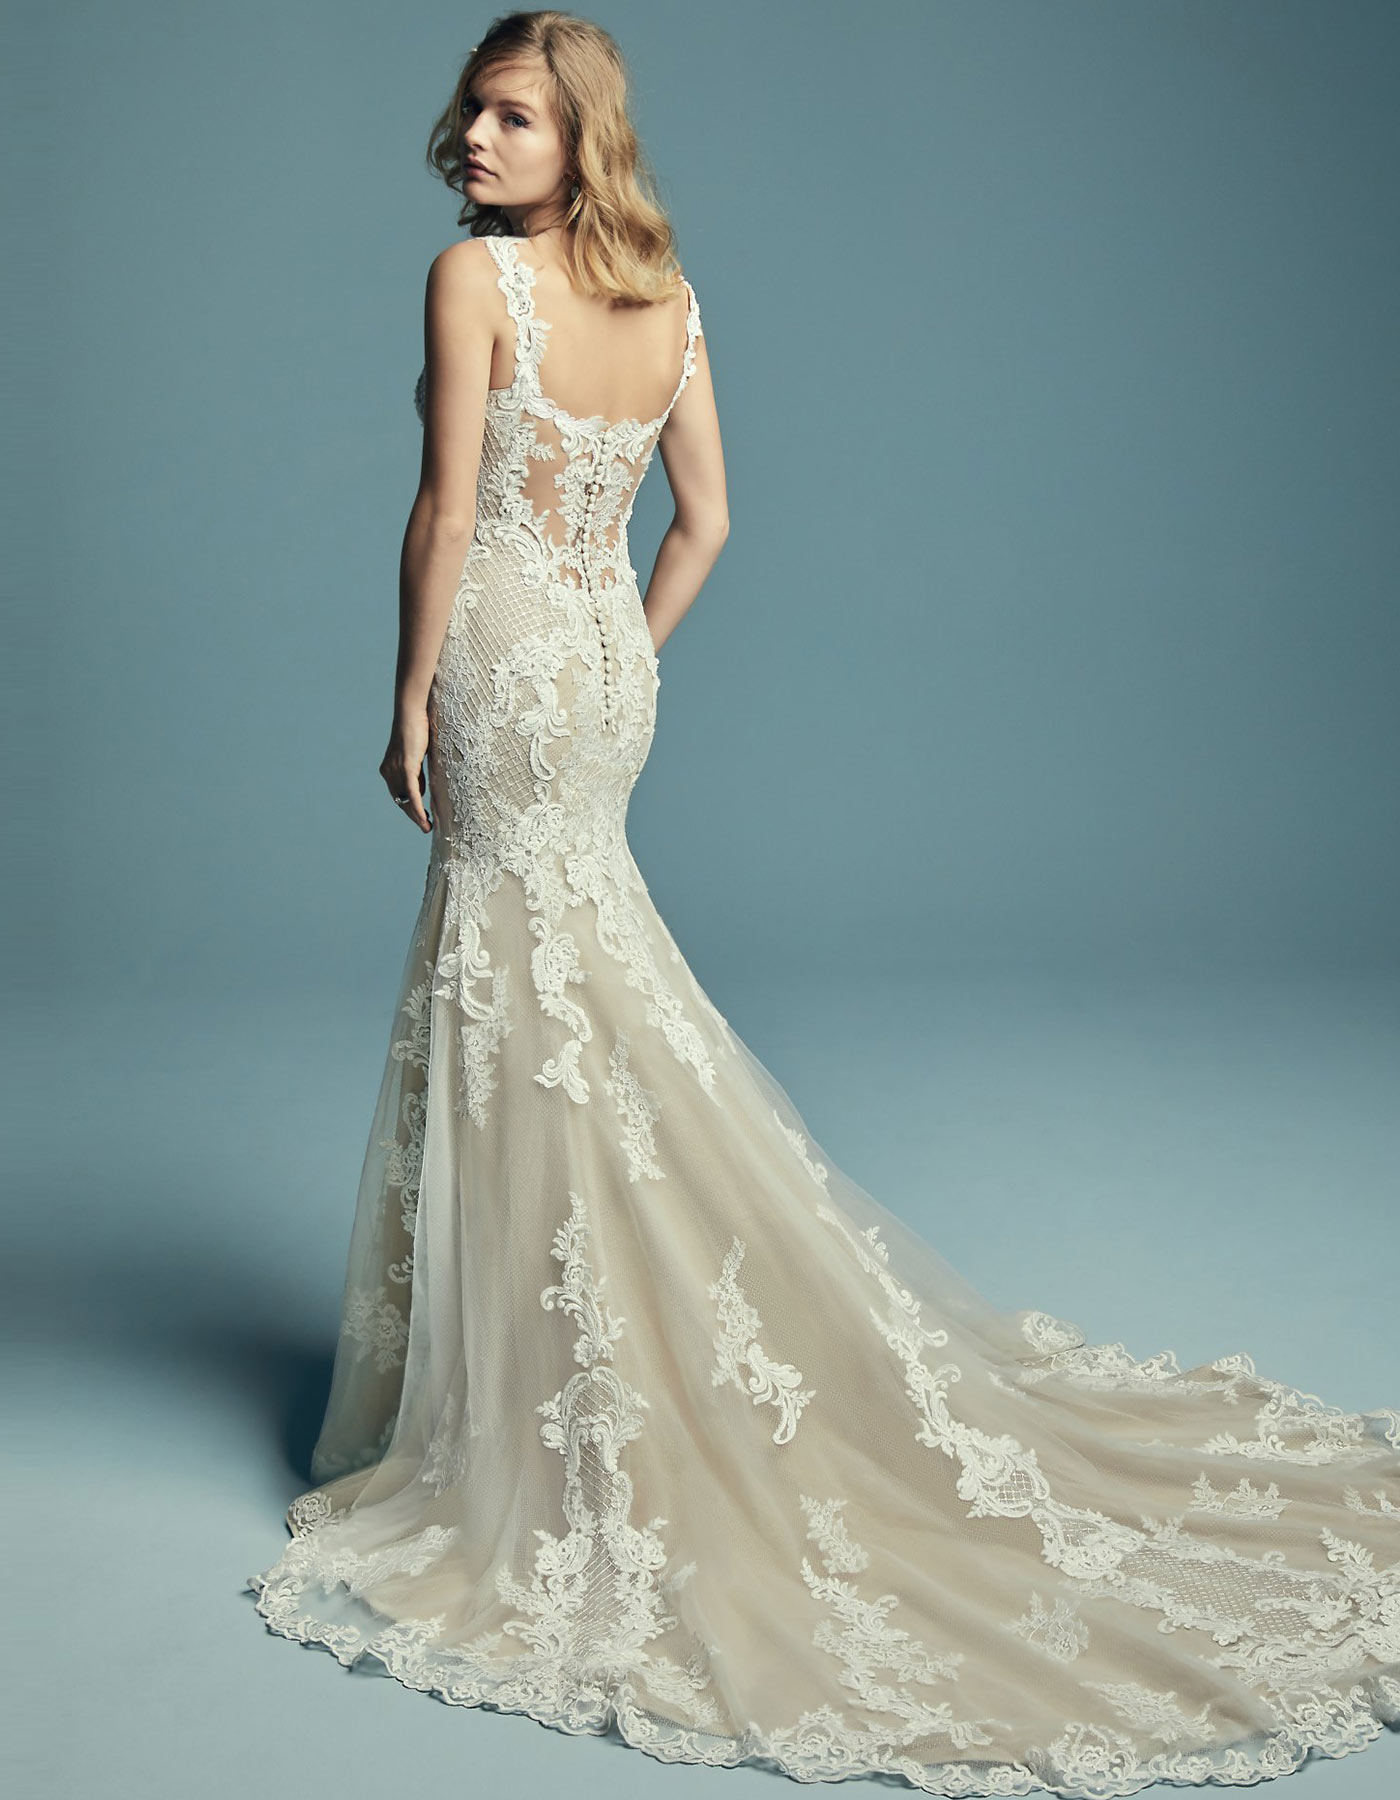 Elegant fit & flare wedding dress | 13141 By Maggie Sottero